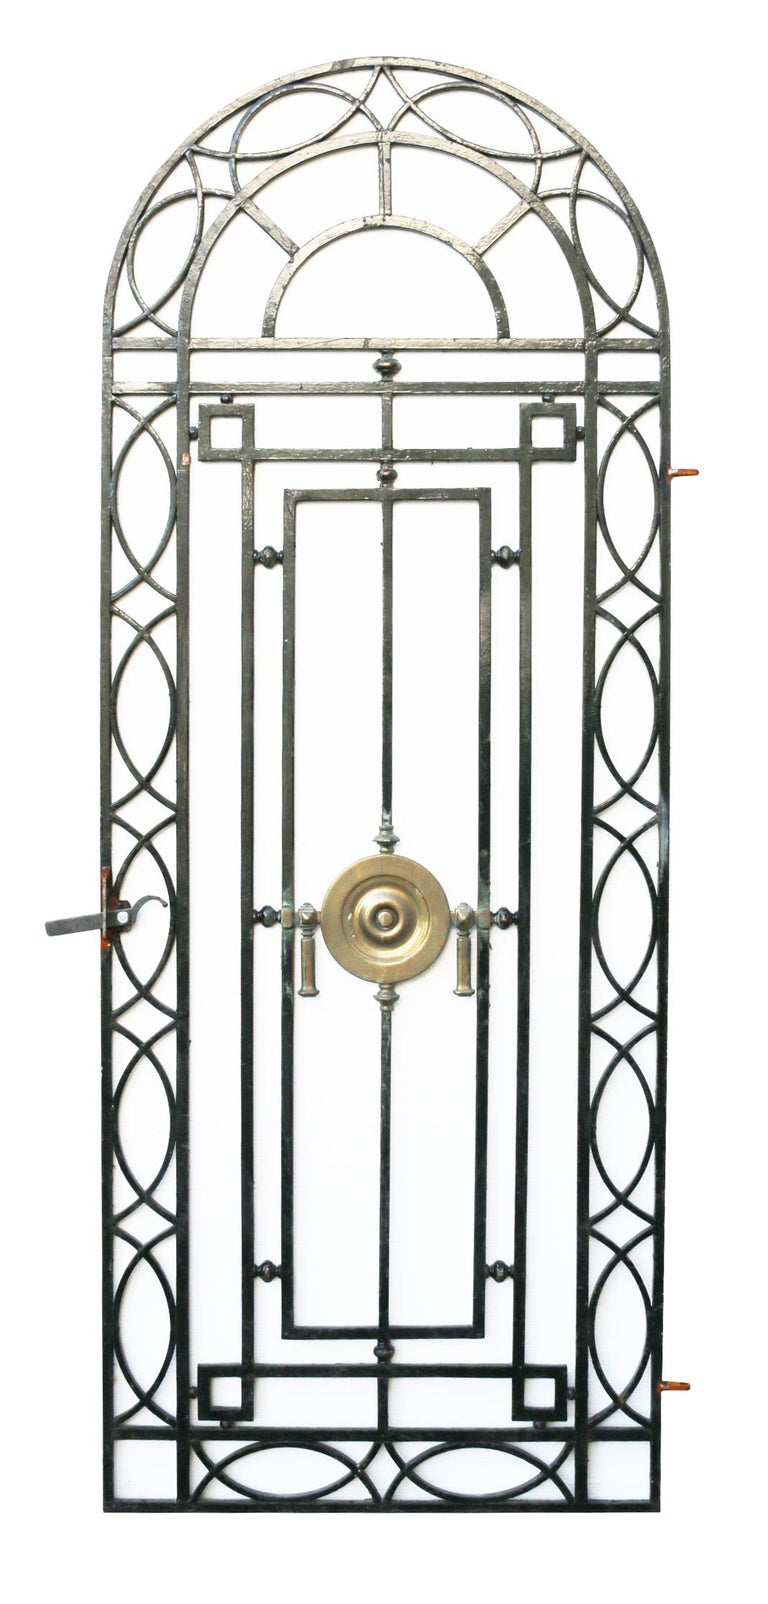 English Wrought Iron Pedestrian Gate With Bronze Roundel, circa 1900 For Sale